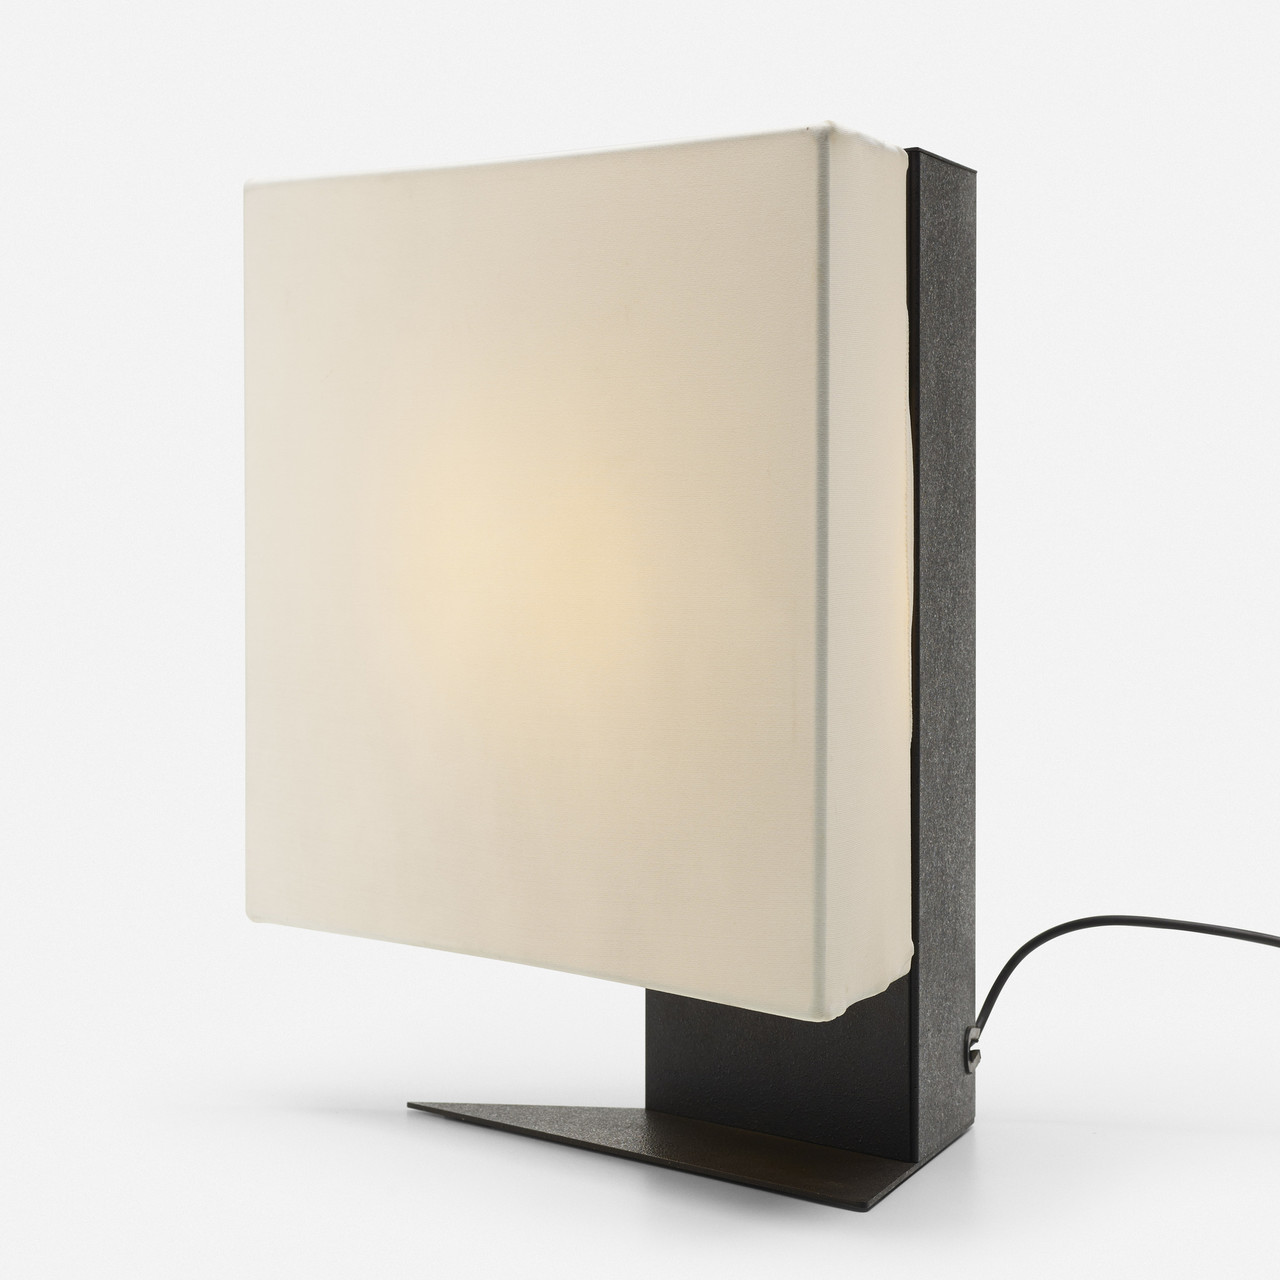 CINI BOERI ACCADEMIA TABLE LAMP